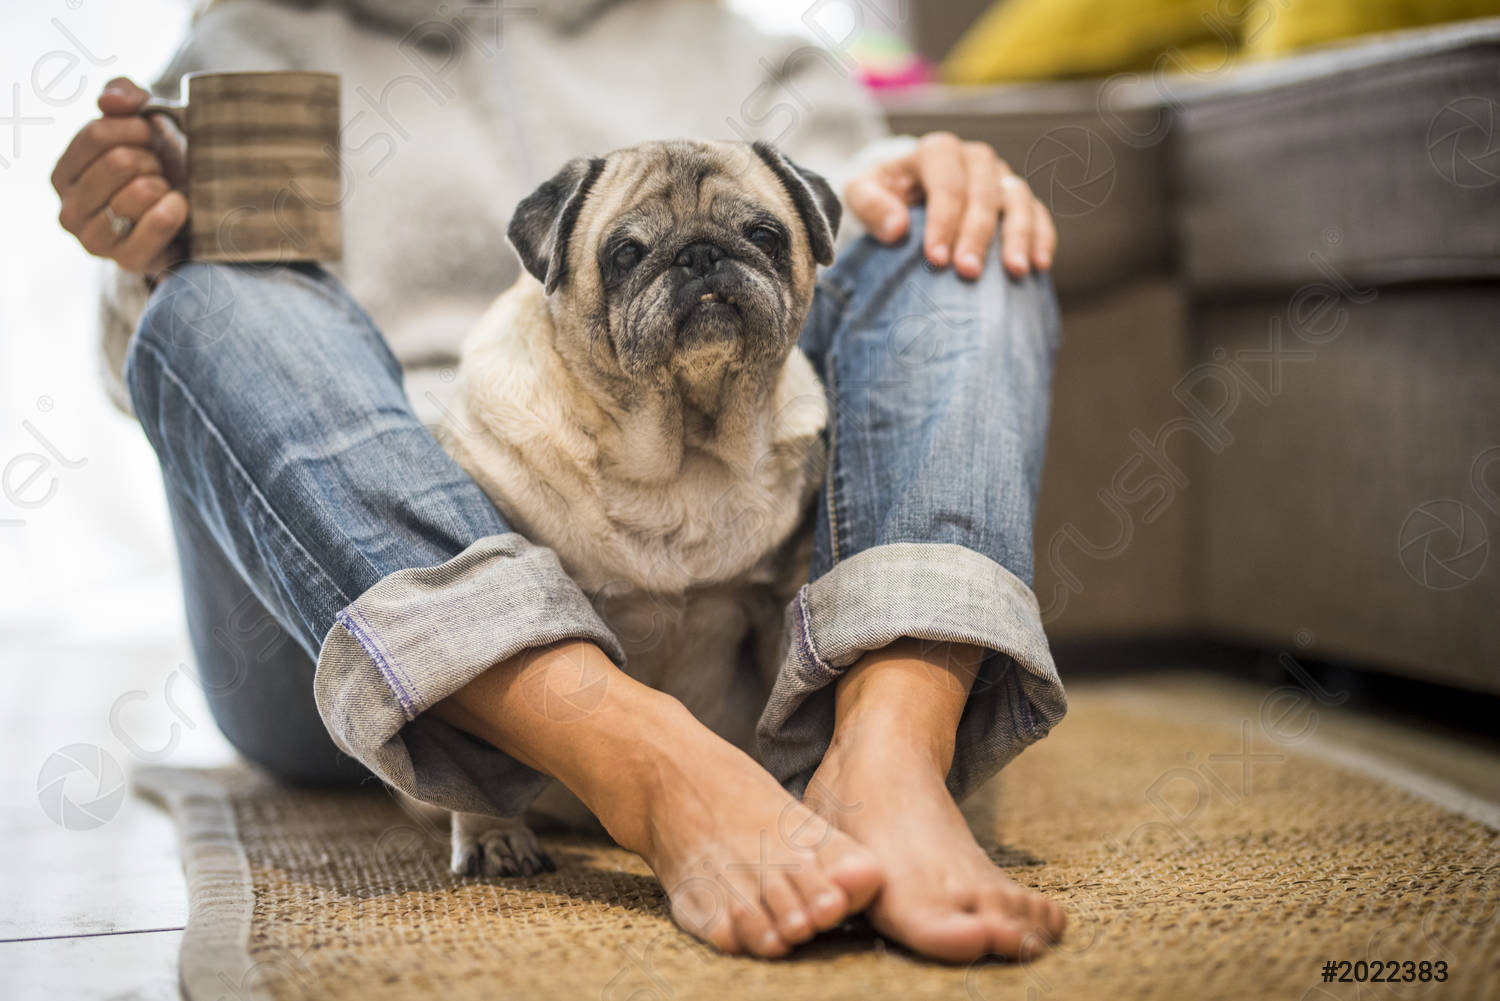 person with older dog sitting on floor